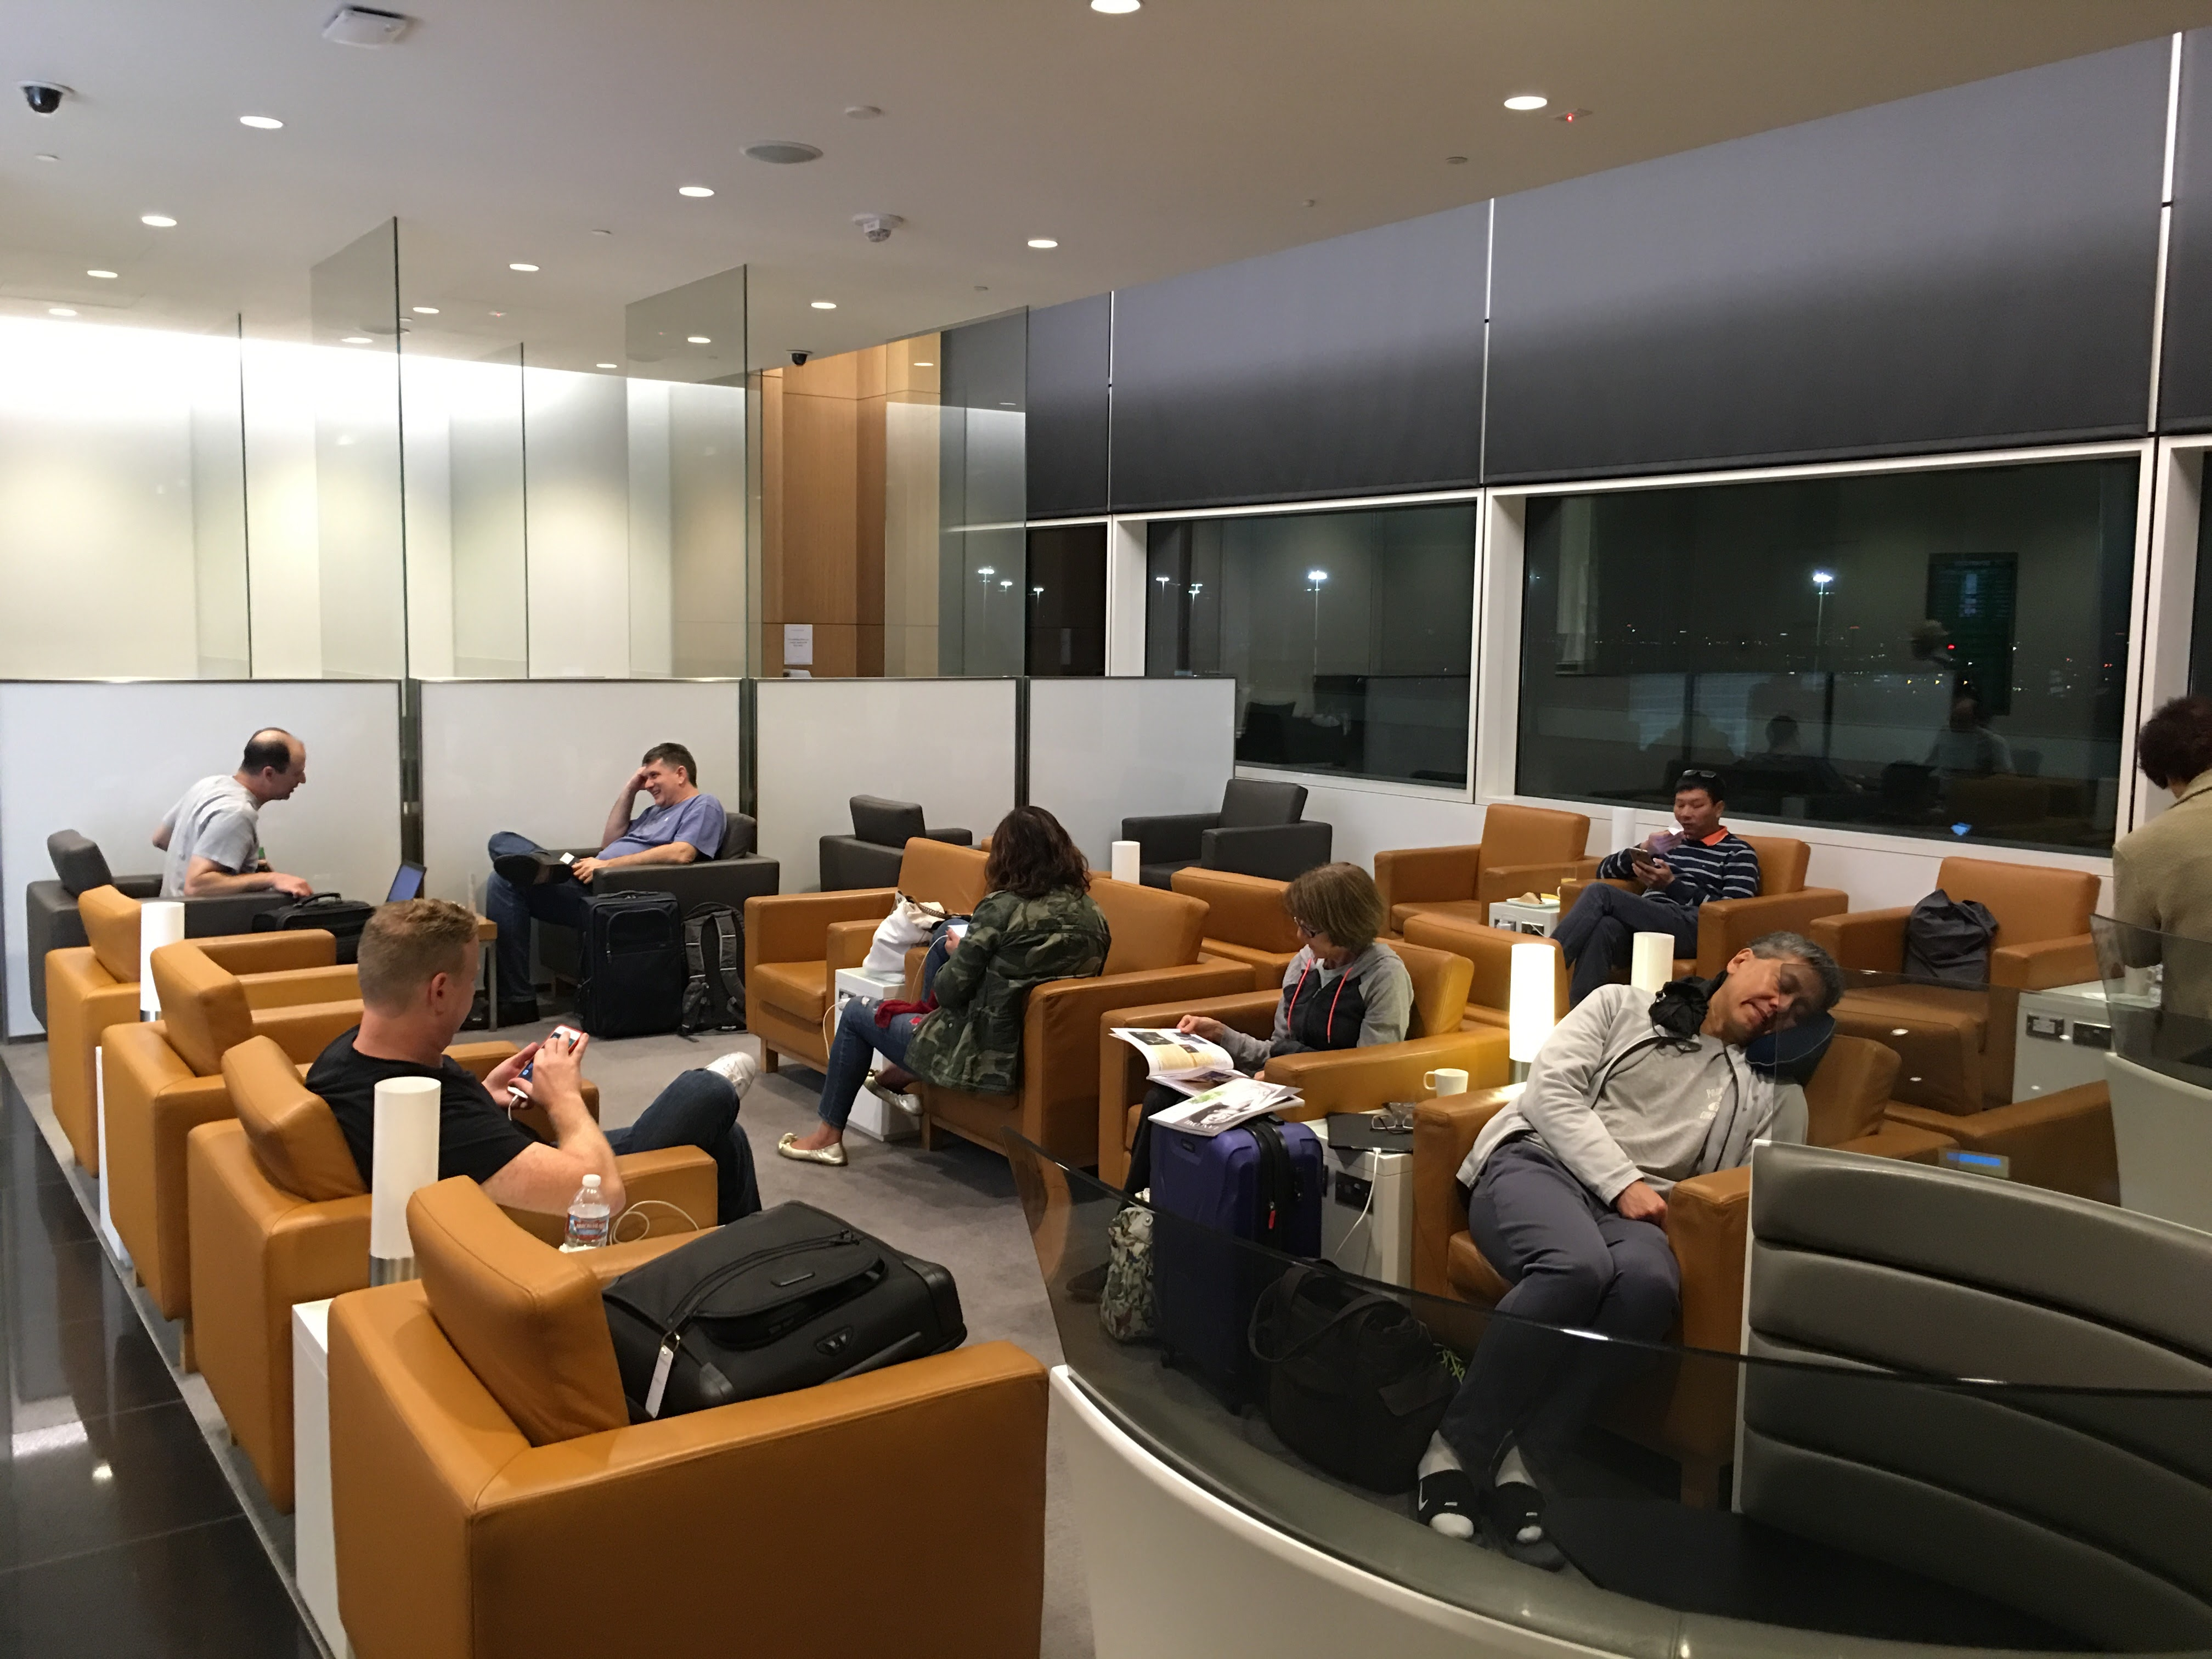 Cathay pacific lounge san francisco sfo review - Cathay pacific head office ...